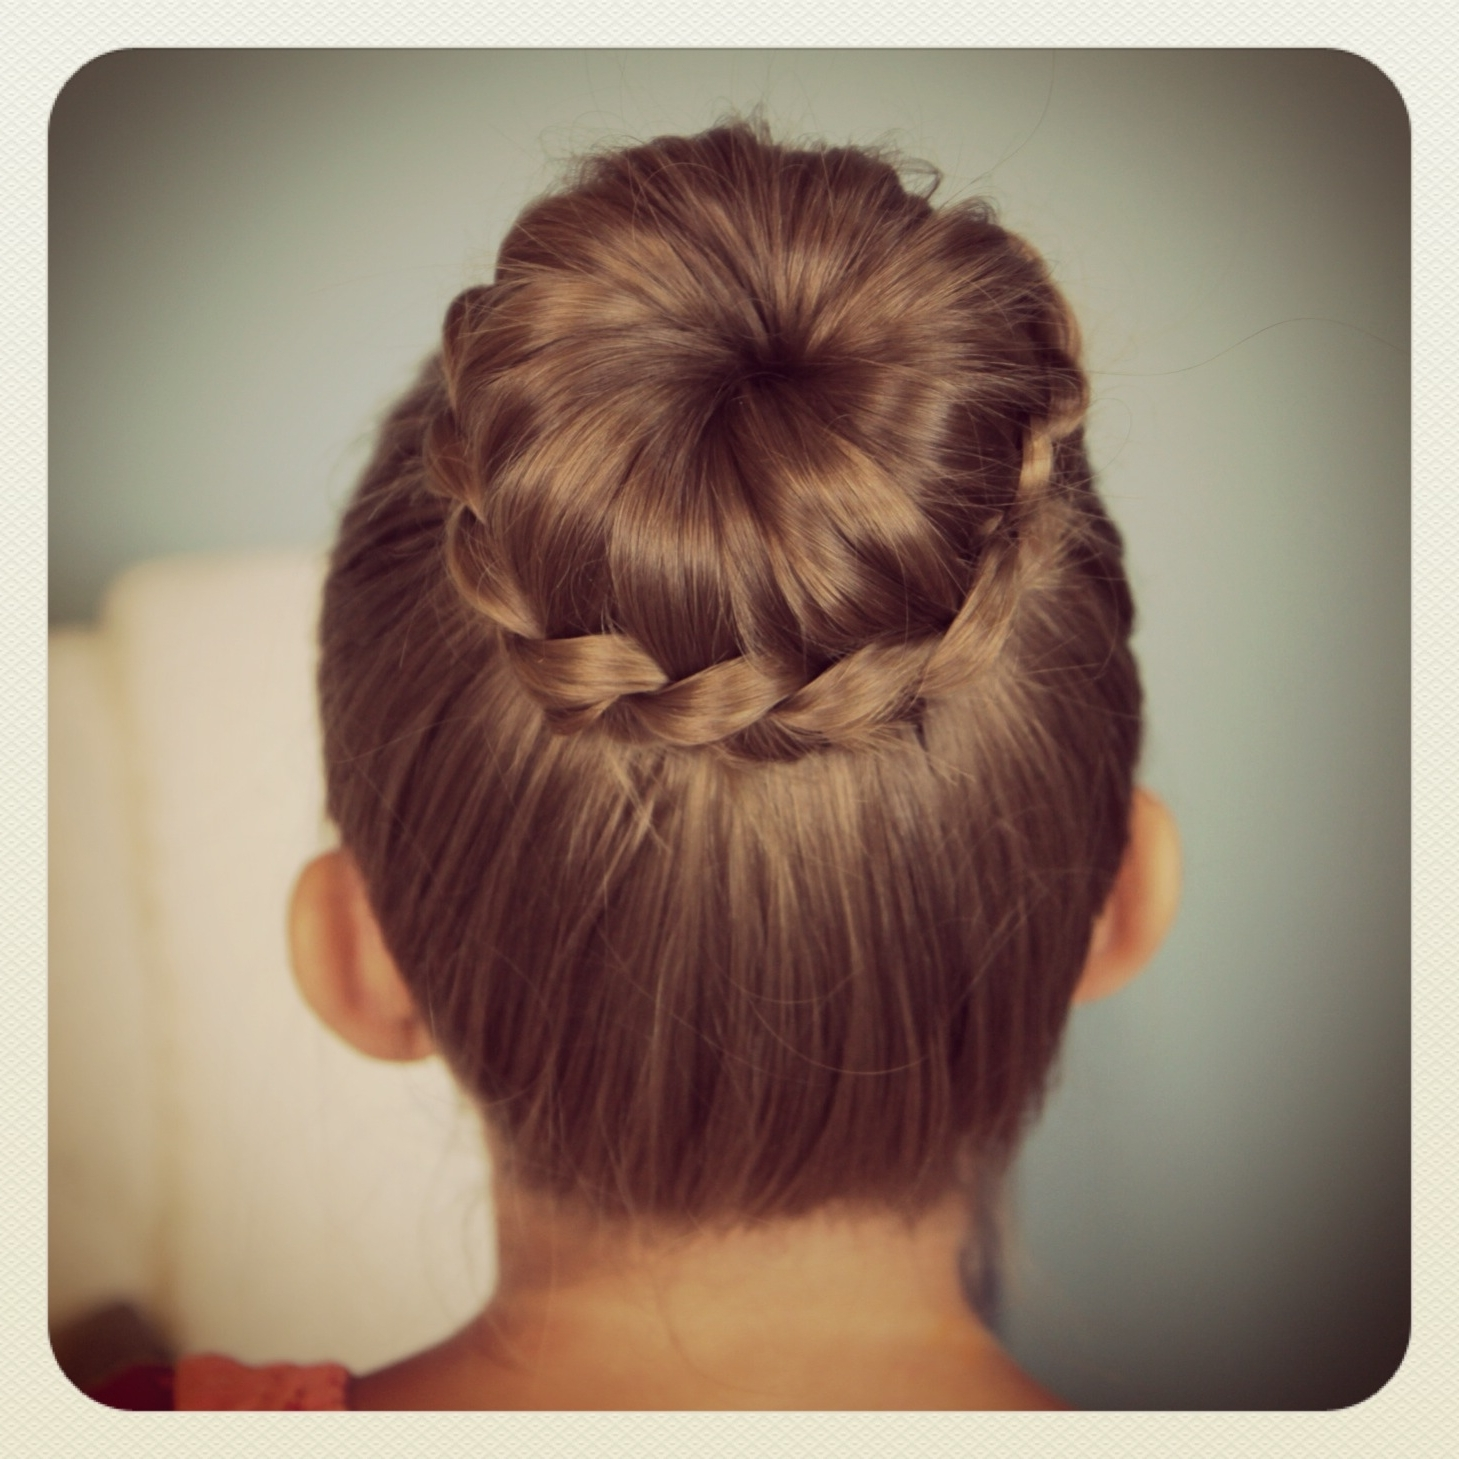 Cute Back To School Hair Cuts | Lace Braided Bun | Cute Updo With Regard To Easy Updo Hairstyles For Kids (View 2 of 15)